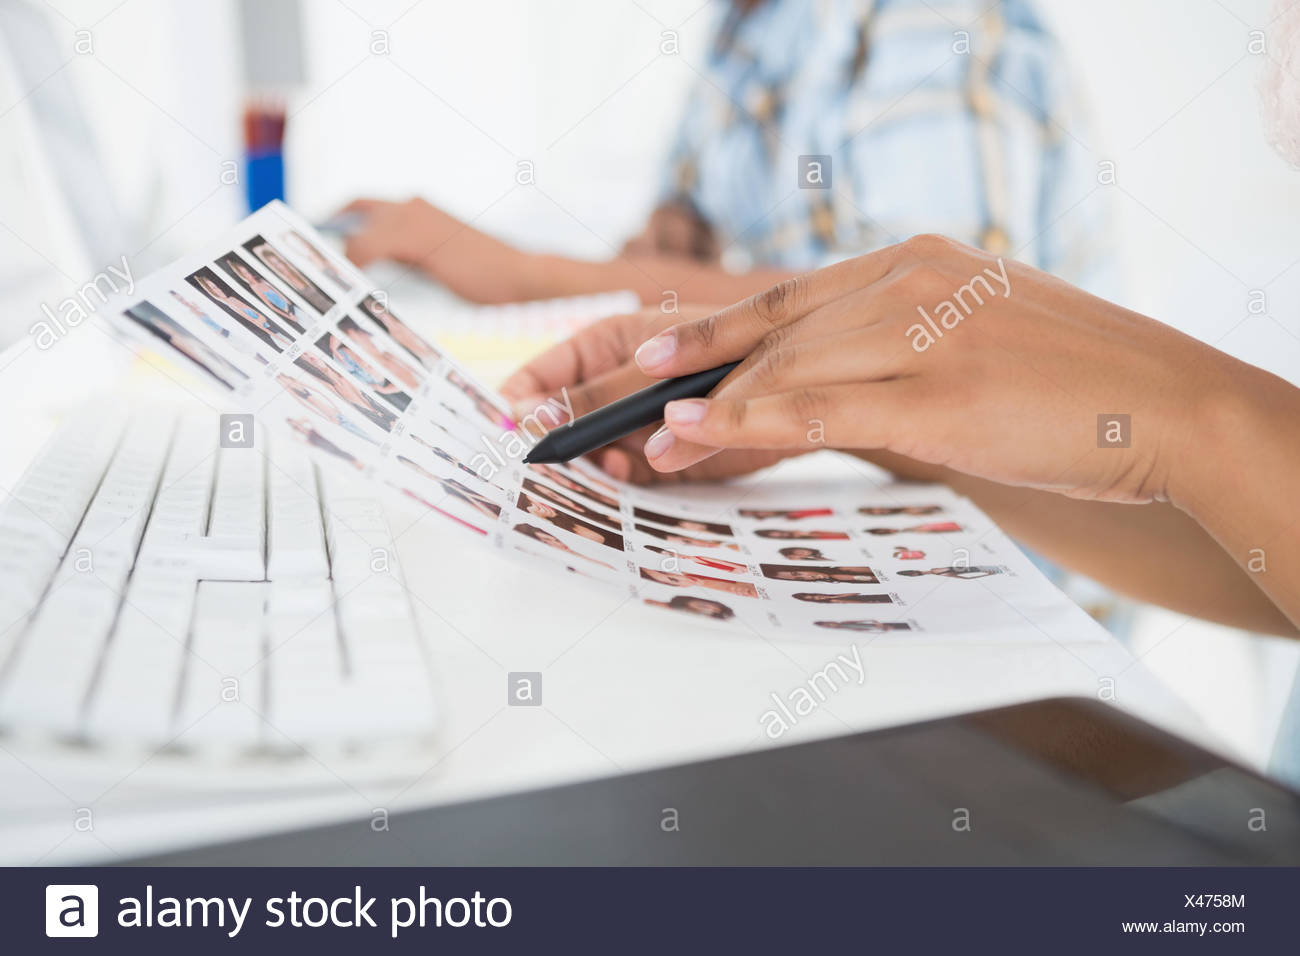 Focused young editorial team working at desk - Stock Image